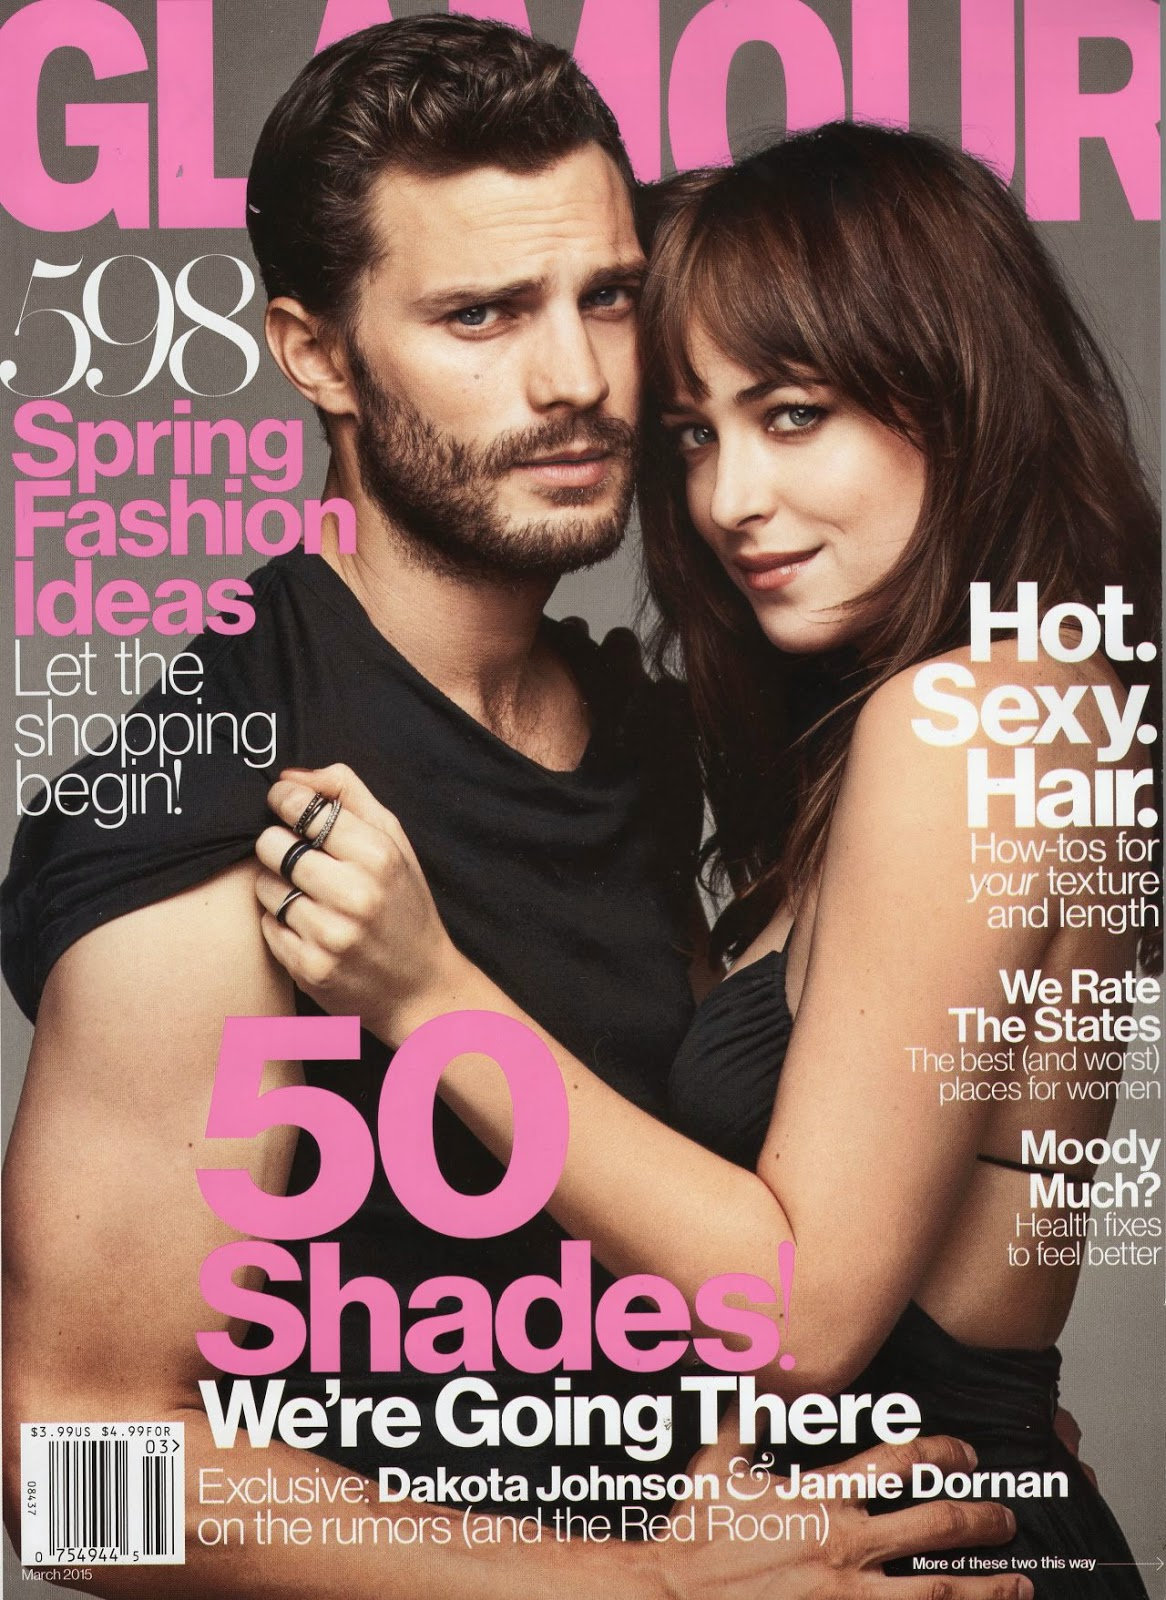 Jamie Dornan and Dakota Johnson get together for Glamour UK's March 2015 cover story